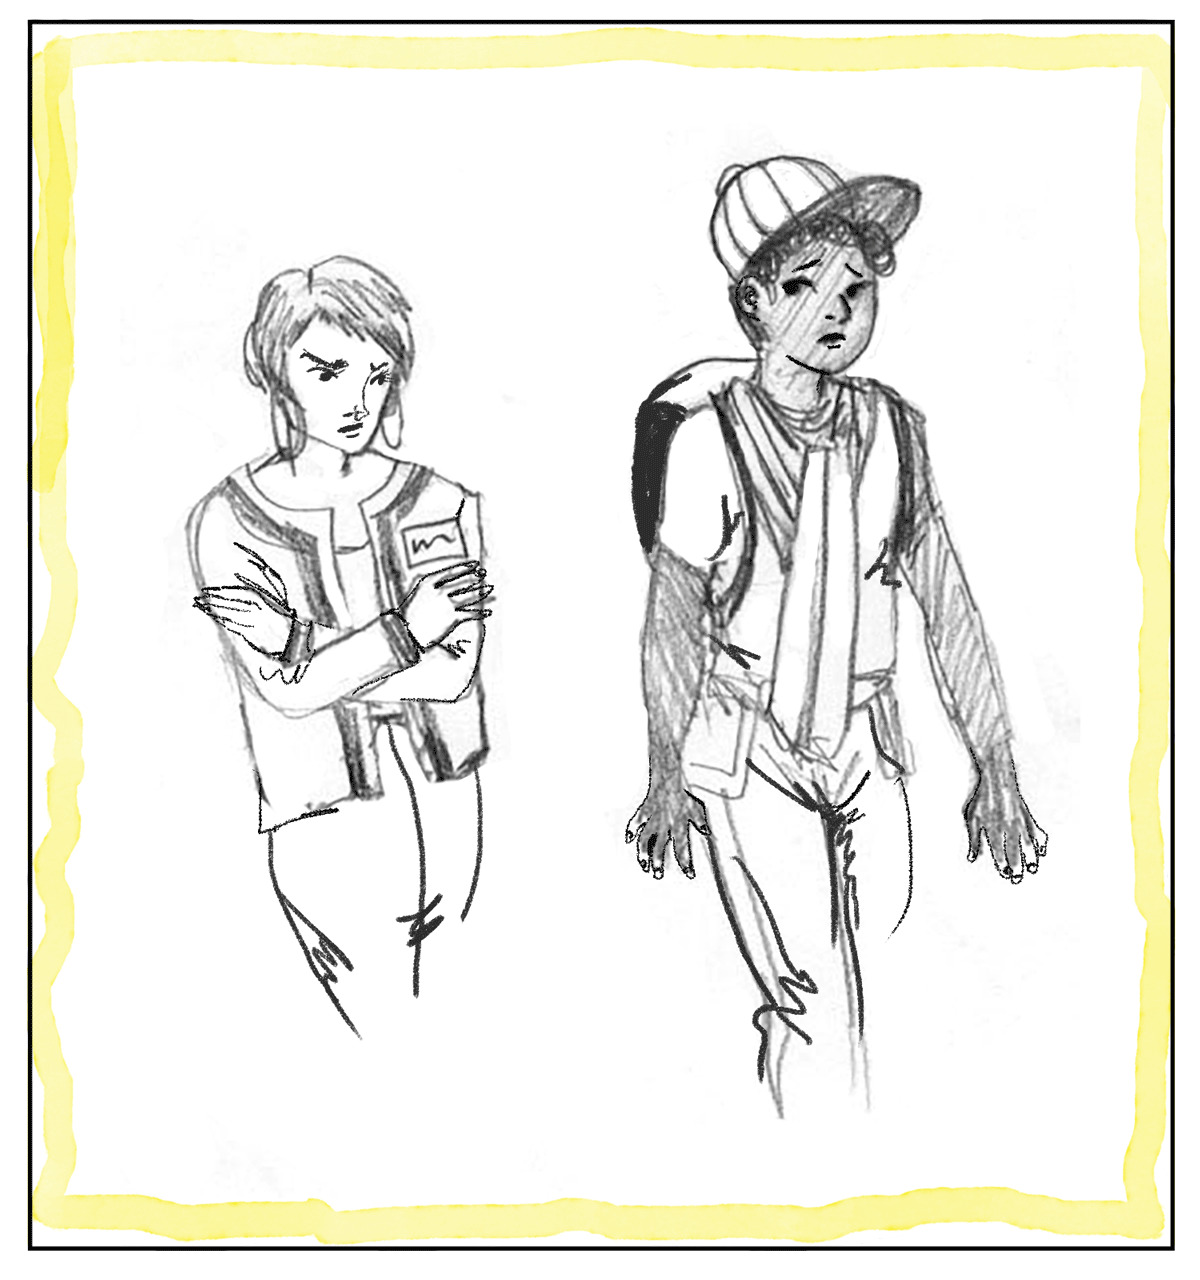 An illustration of a store clerk following a black teen with a backpack.